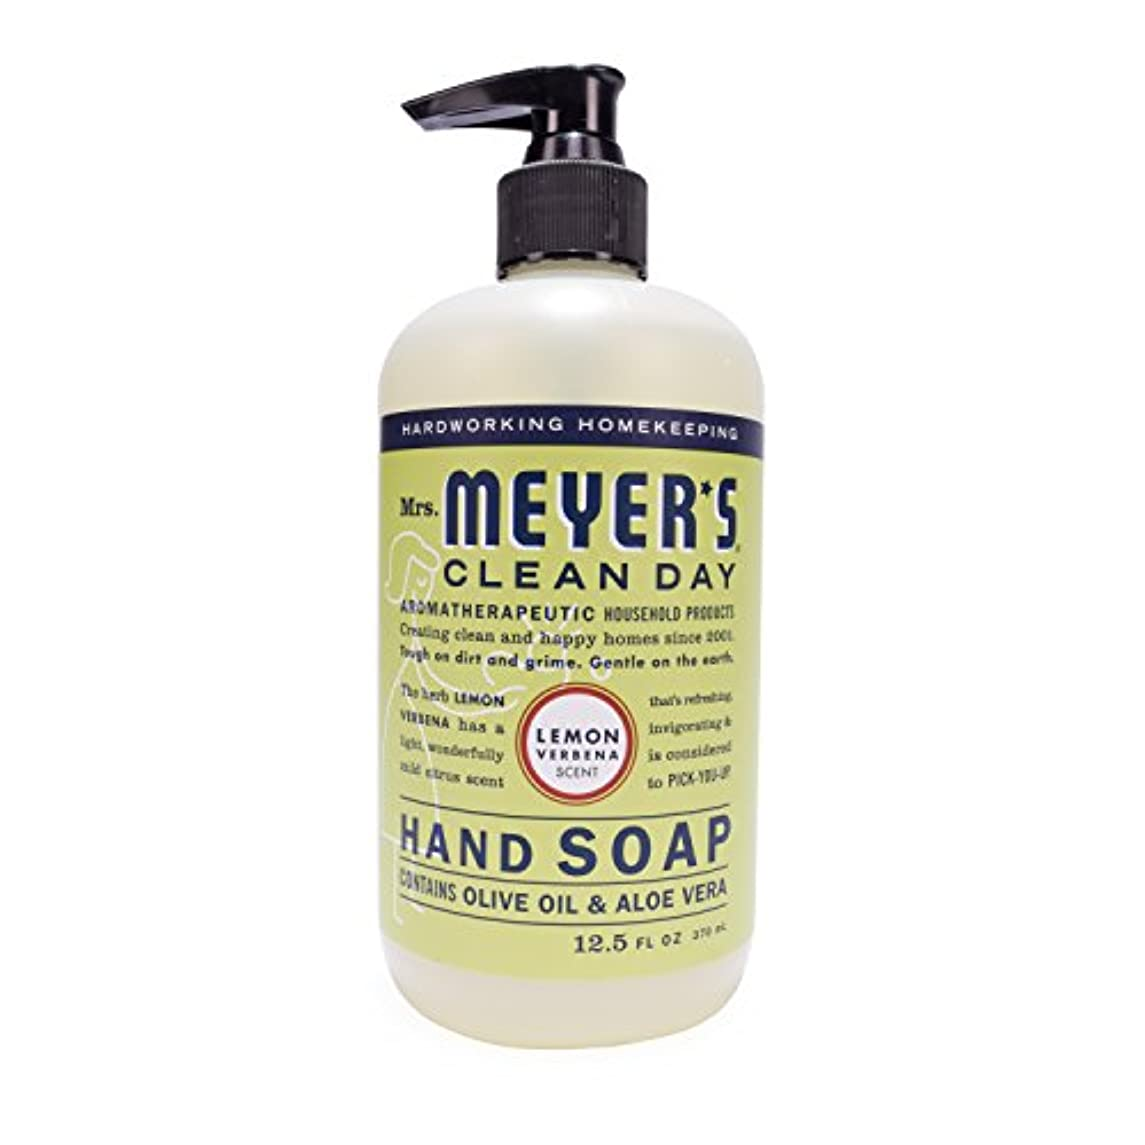 宴会赤面ストッキングMrs. Meyer's Hand Soap Lemon Verbena, 12.5 Fluid Ounce (Pack of 3) by Mrs. Meyer's Clean Day